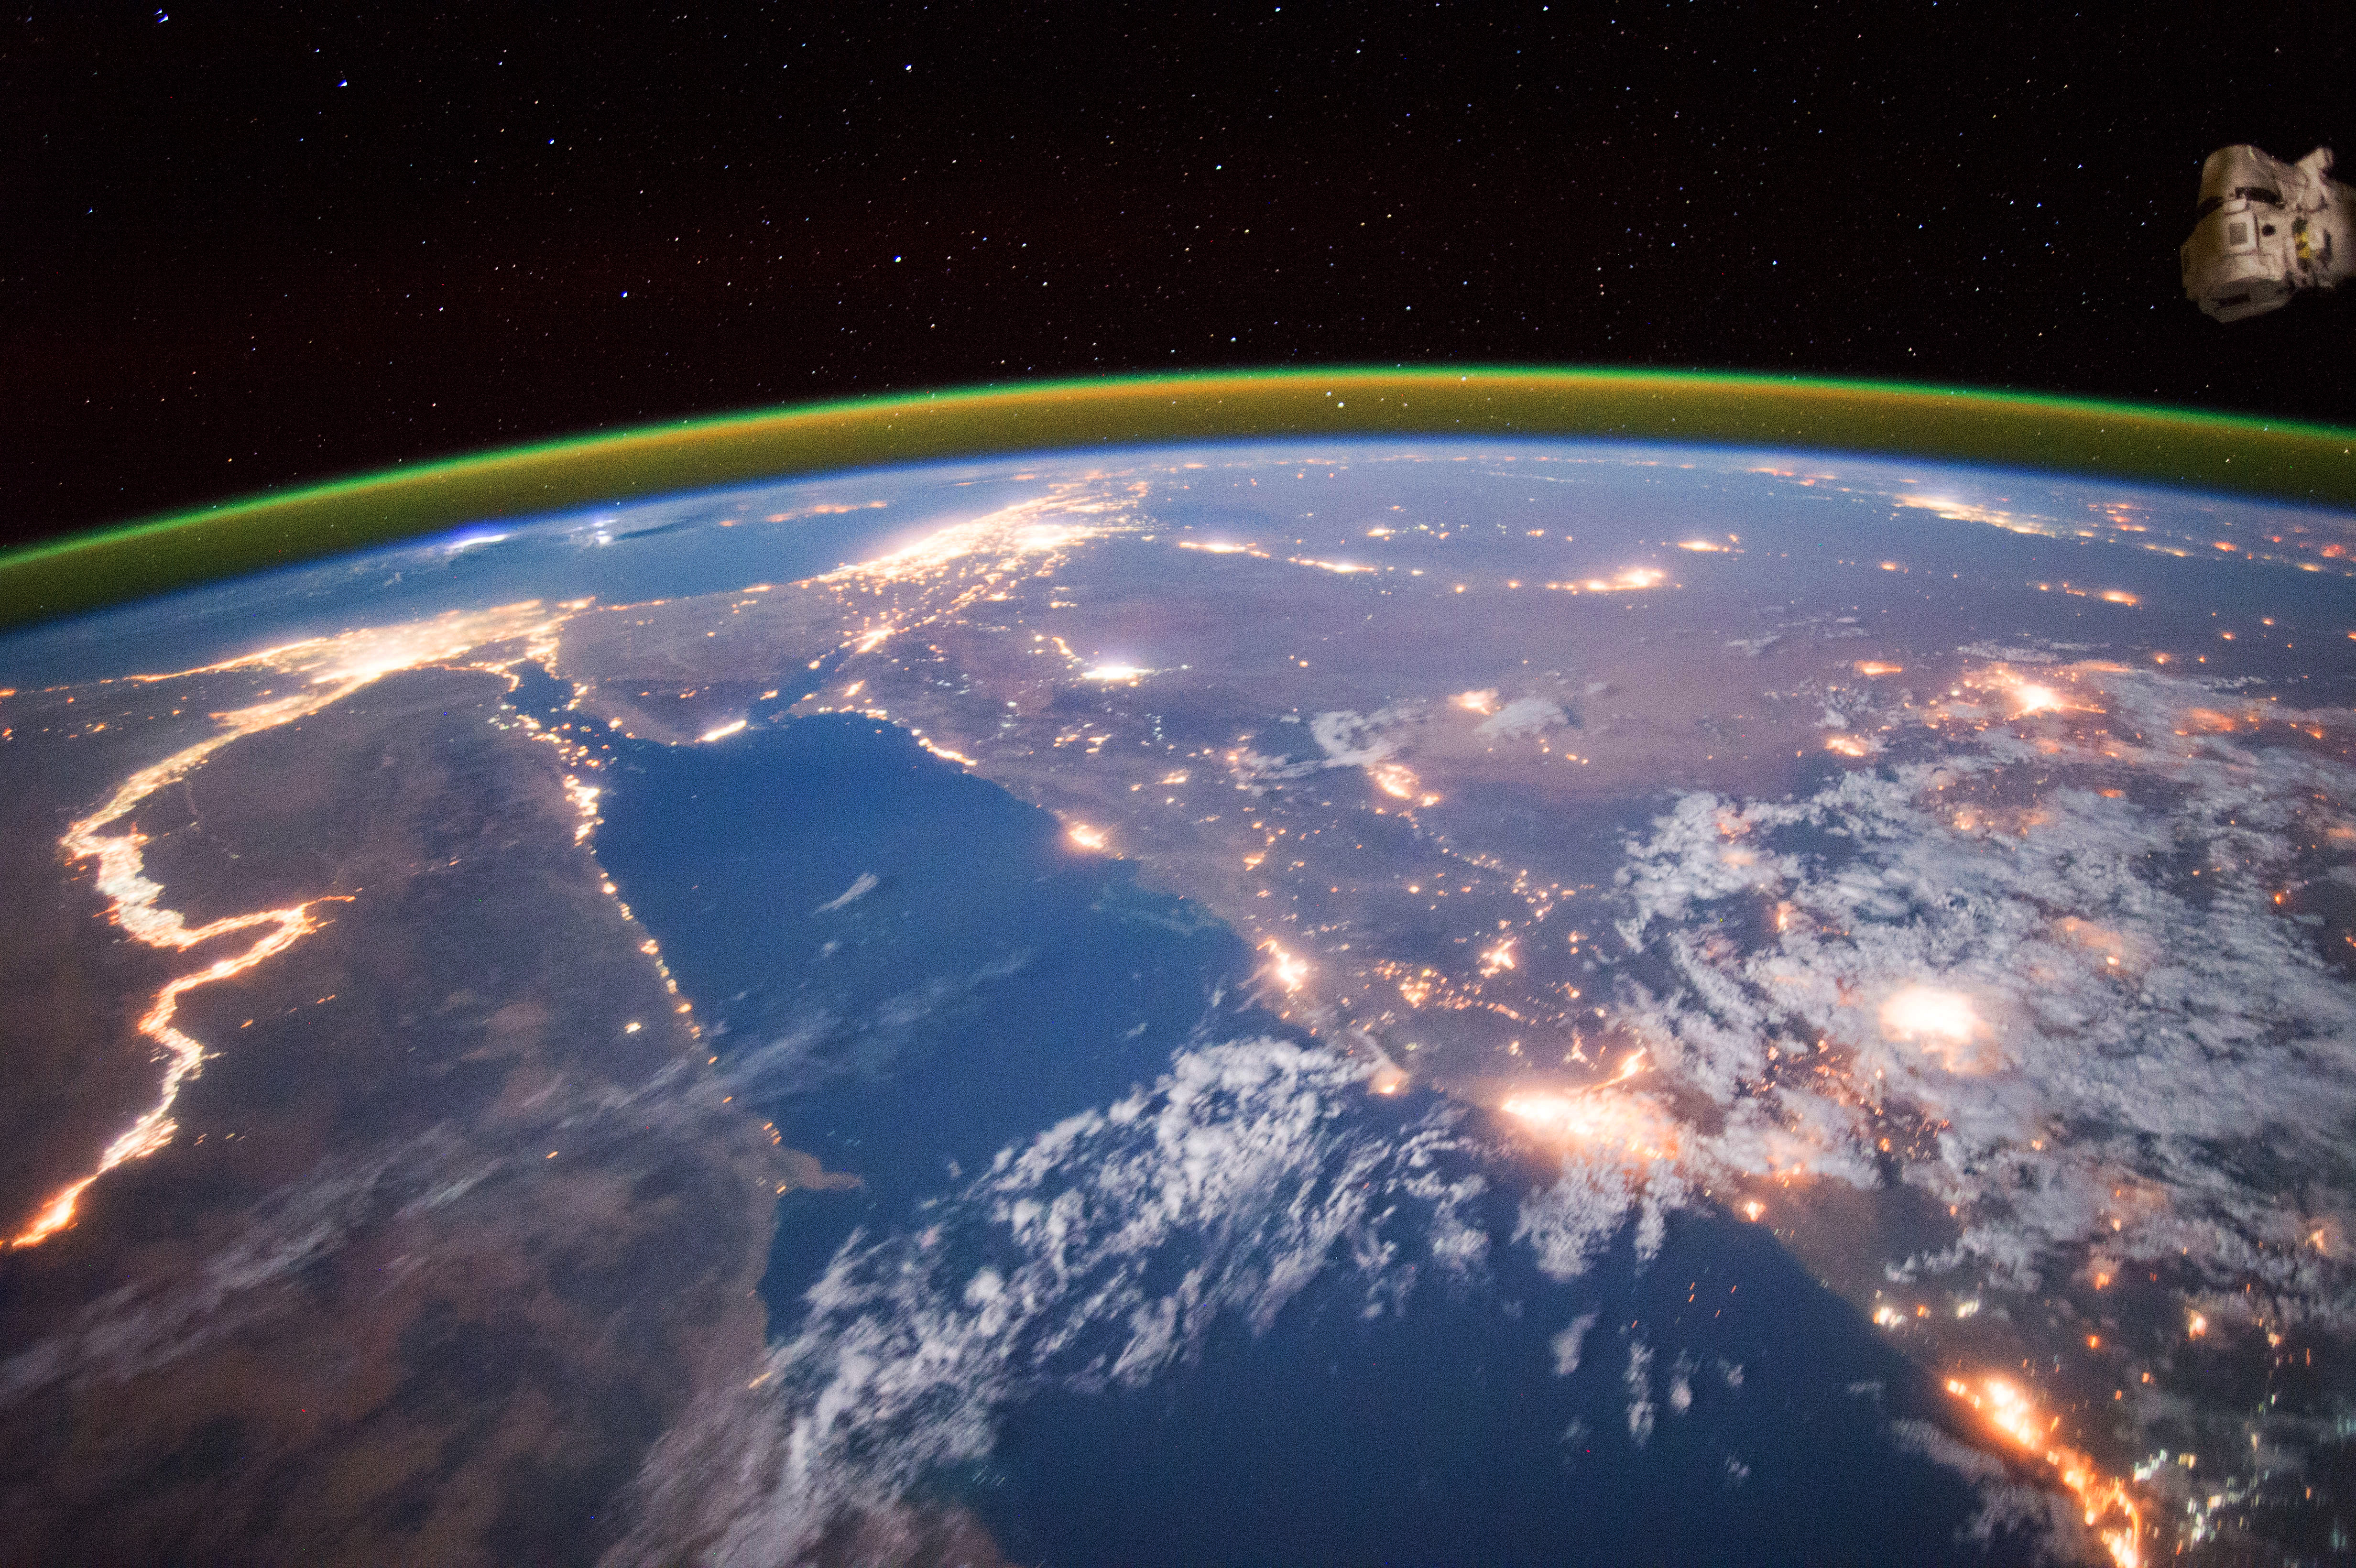 pictures by nasa - photo #24